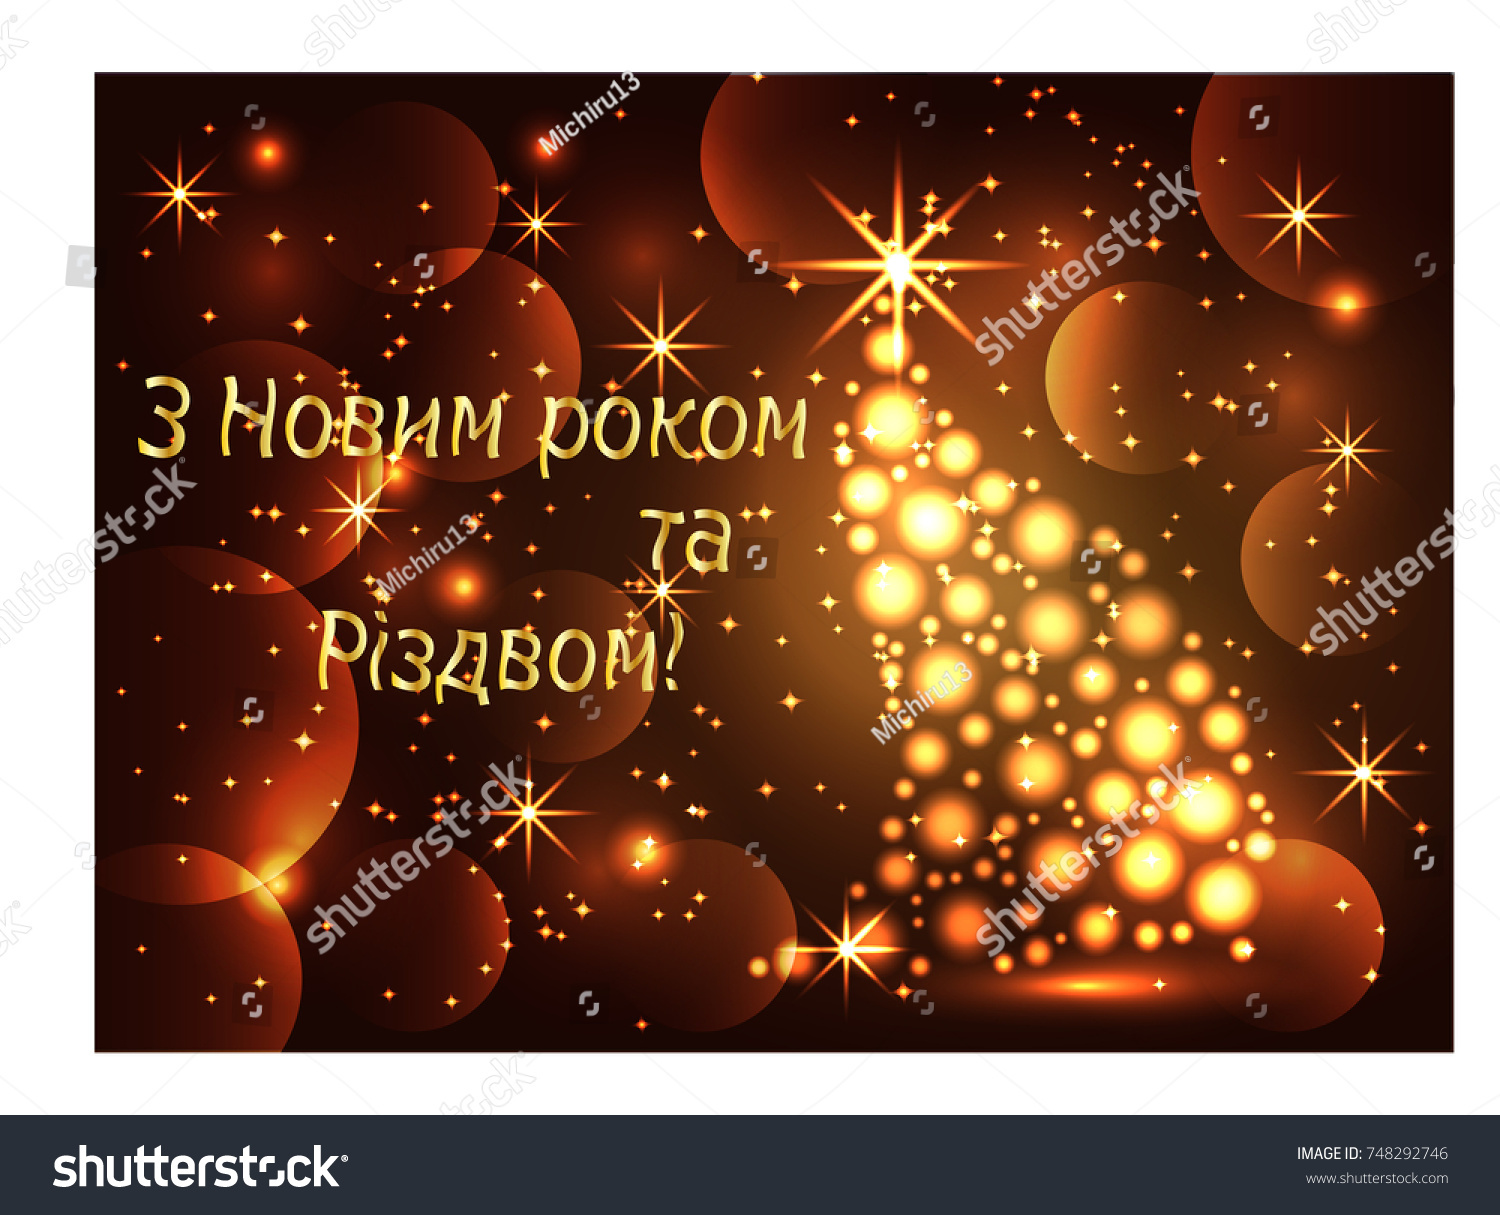 Sparkling bright dark new year christmas stock illustration sparkling bright dark new year or christmas background with a glowing christmas tree m4hsunfo